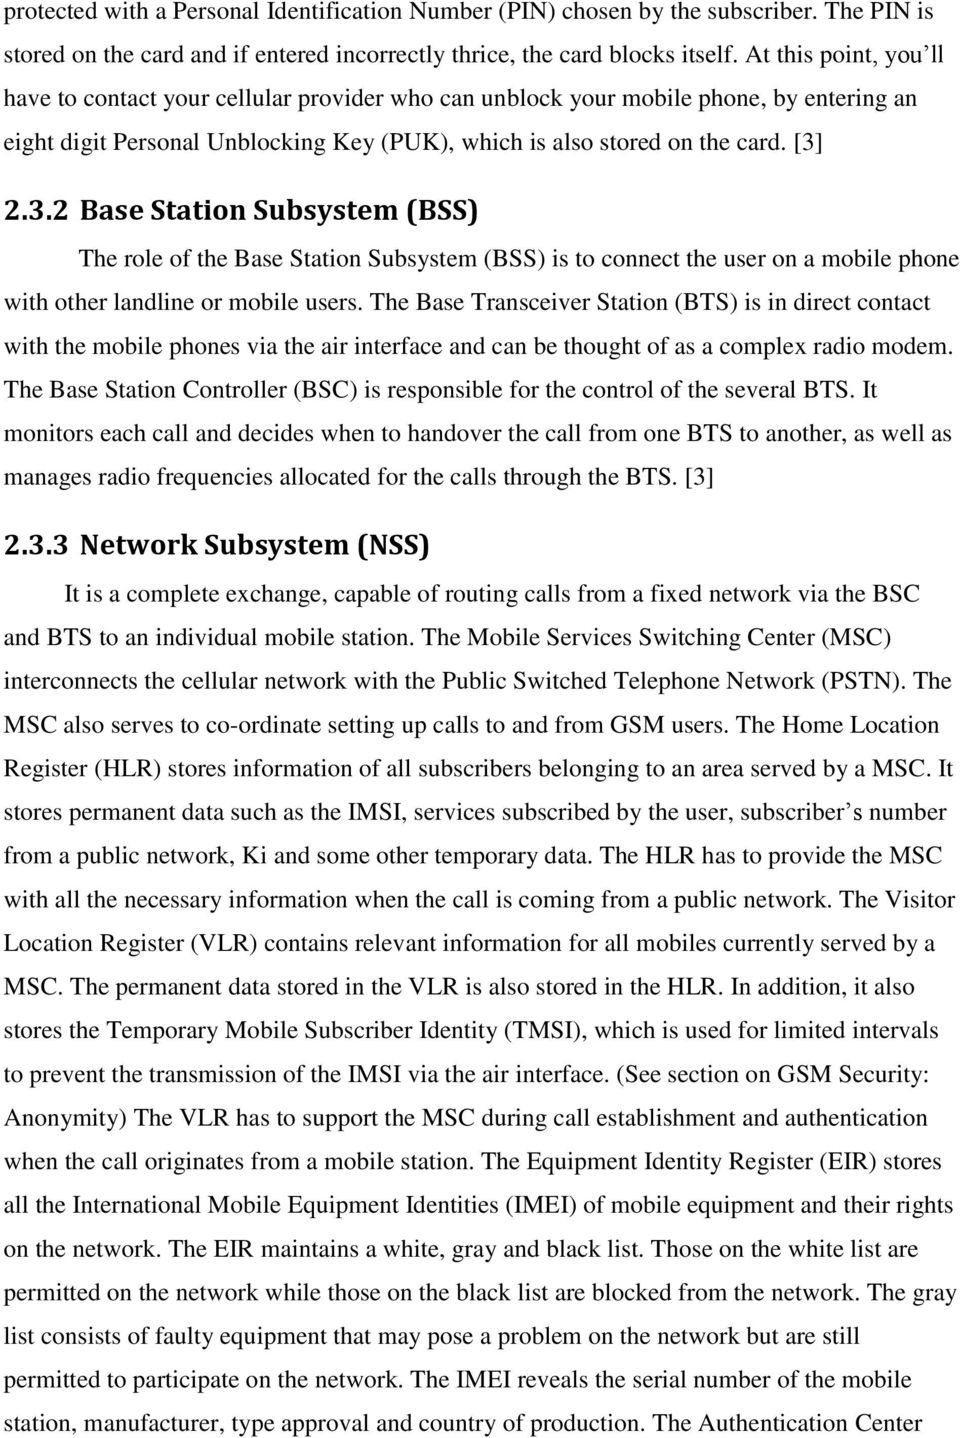 2.3.2 Base Station Subsystem (BSS) The role of the Base Station Subsystem (BSS) is to connect the user on a mobile phone with other landline or mobile users.